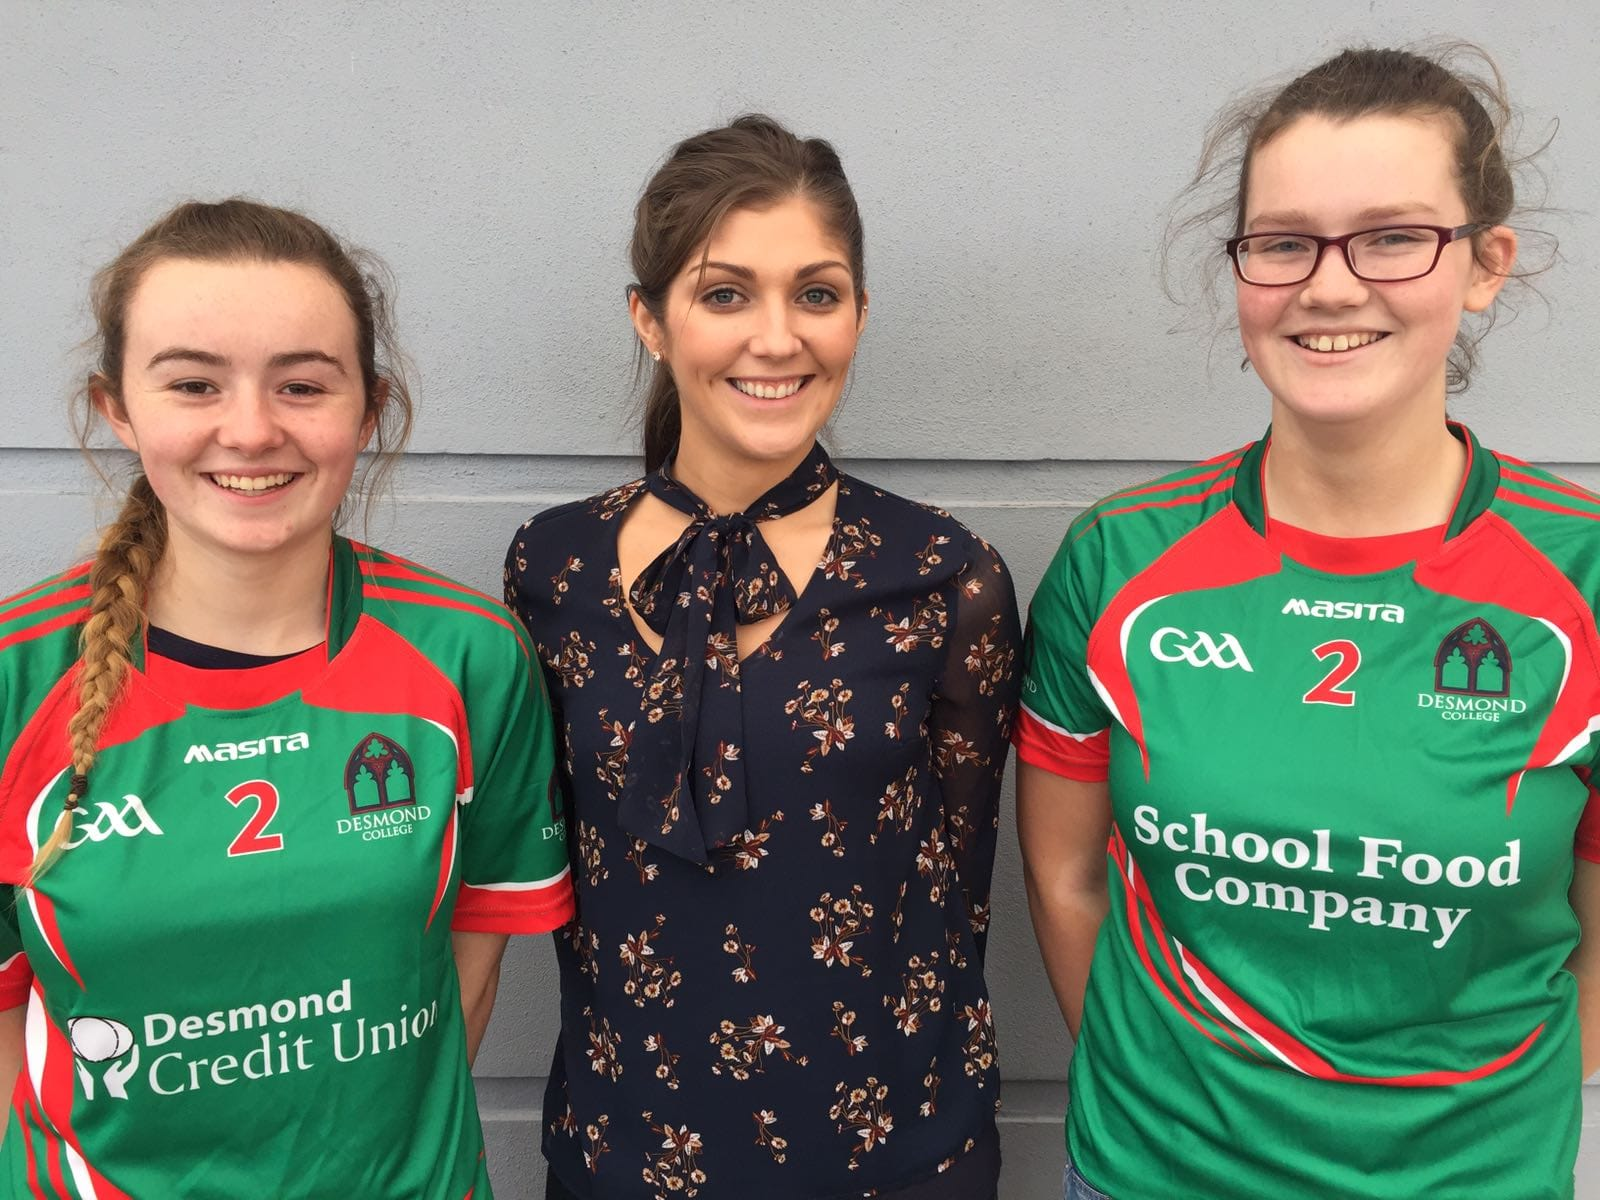 2017 Feb: Desmond College sports students modelling the fabulous jerseys sponsored by The School Food Company with Teacher and Trainer Ms Marie Hennessy